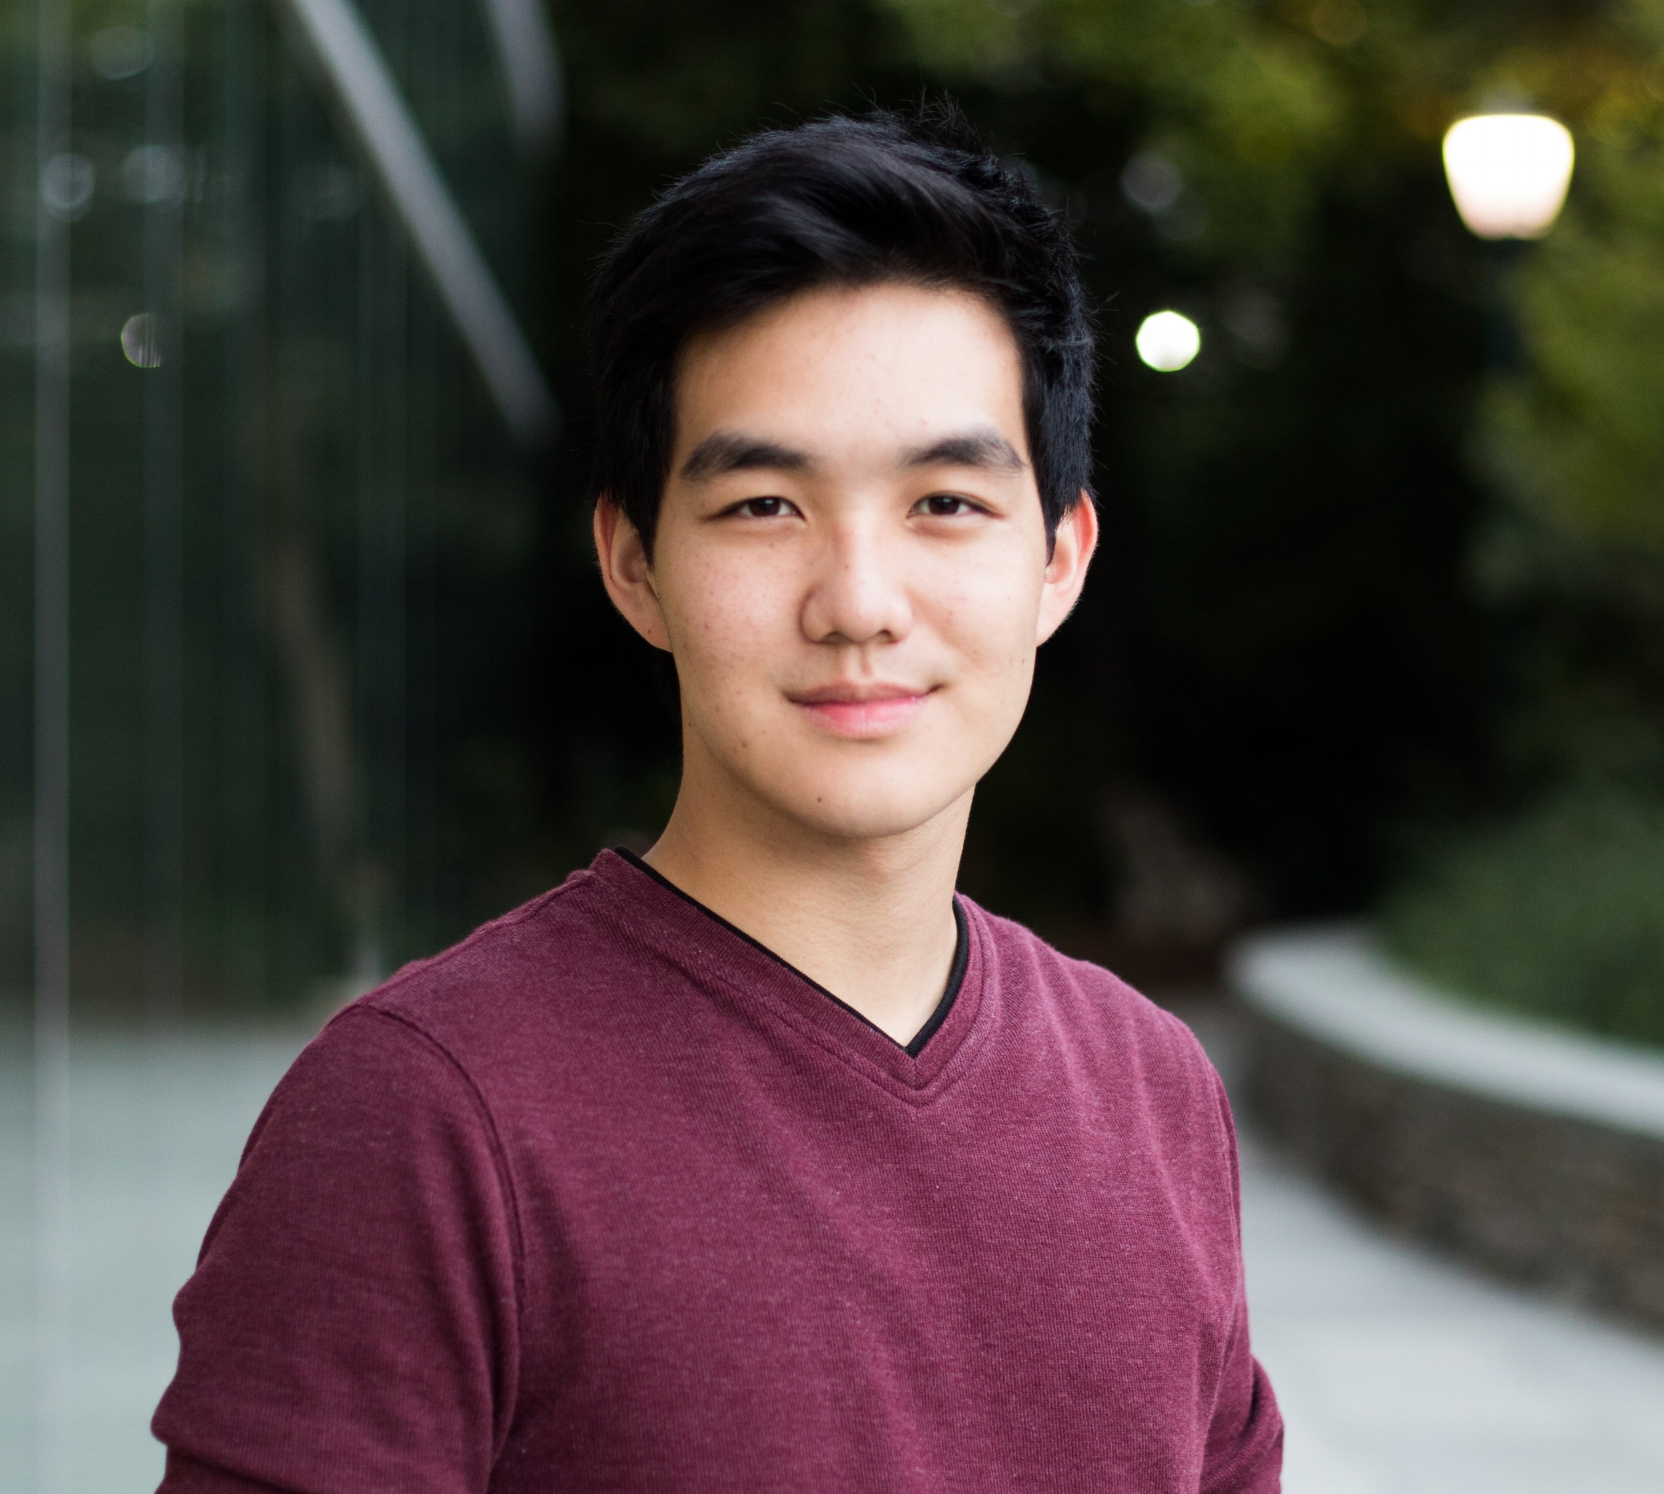 johnathan chen - Major: Electrical EngineeringYear: 2019Contact: chenjoh@seas.upenn.eduBio: Johnathan D. Chen (SEAS '19, W' 19) serves as President of EDAB and studies Electrical Engineering and Business. You can usually find him around school taking photos of campus or hunting for a new food truck.